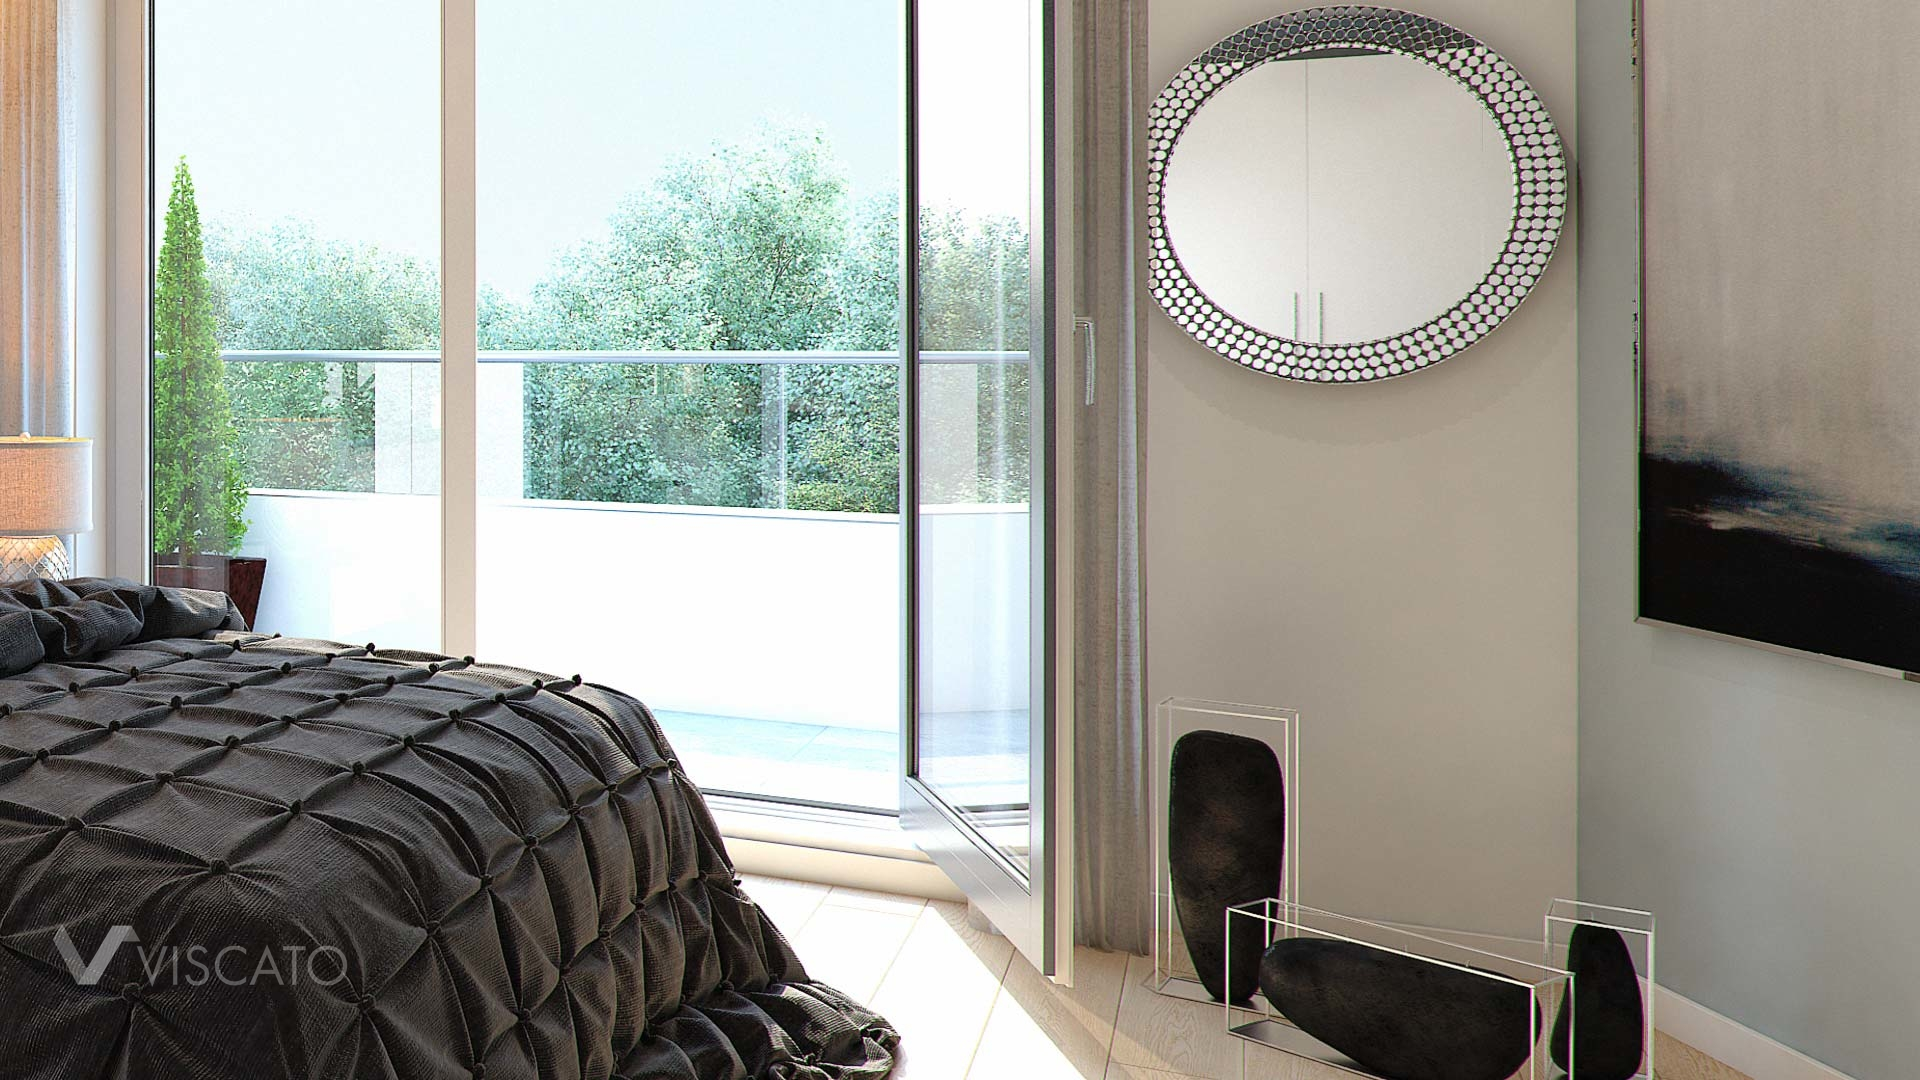 Interior 3d visualization of bedroom in Leverkusen - view on detail with bed, candles and mirror